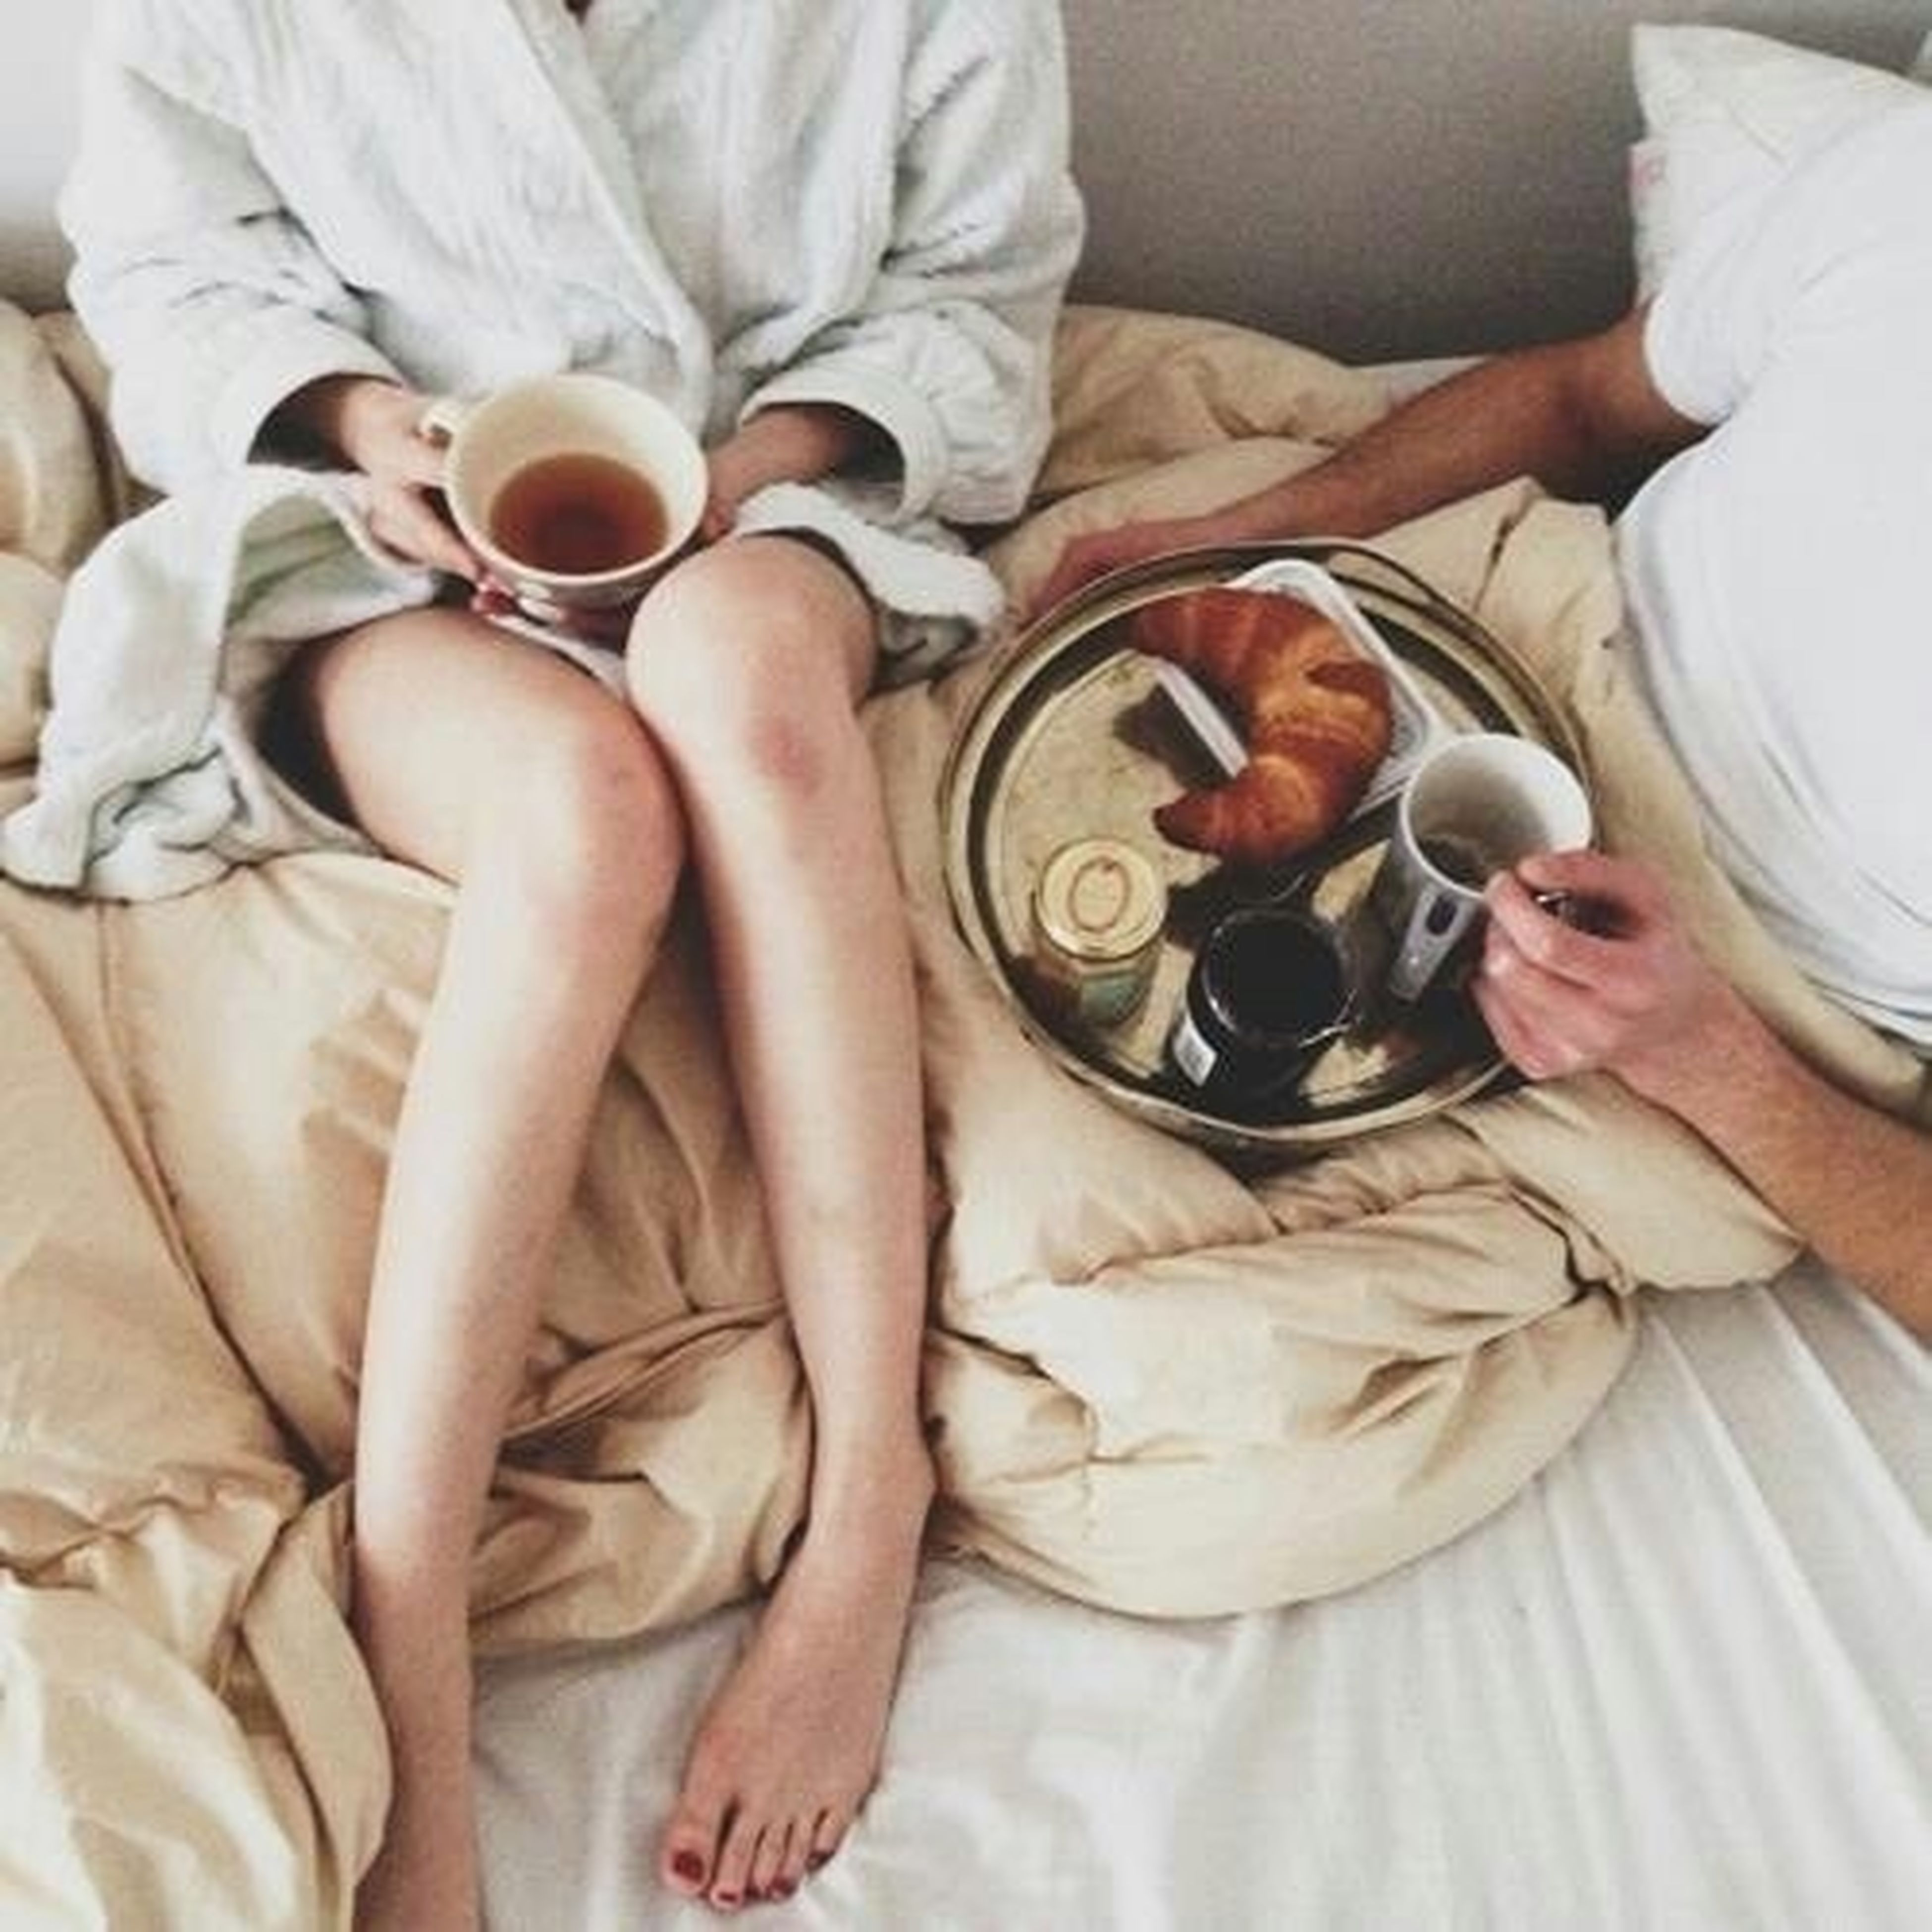 indoors, bed, high angle view, relaxation, table, sitting, home interior, bedroom, pillow, food and drink, lifestyles, casual clothing, person, blanket, midsection, men, holding